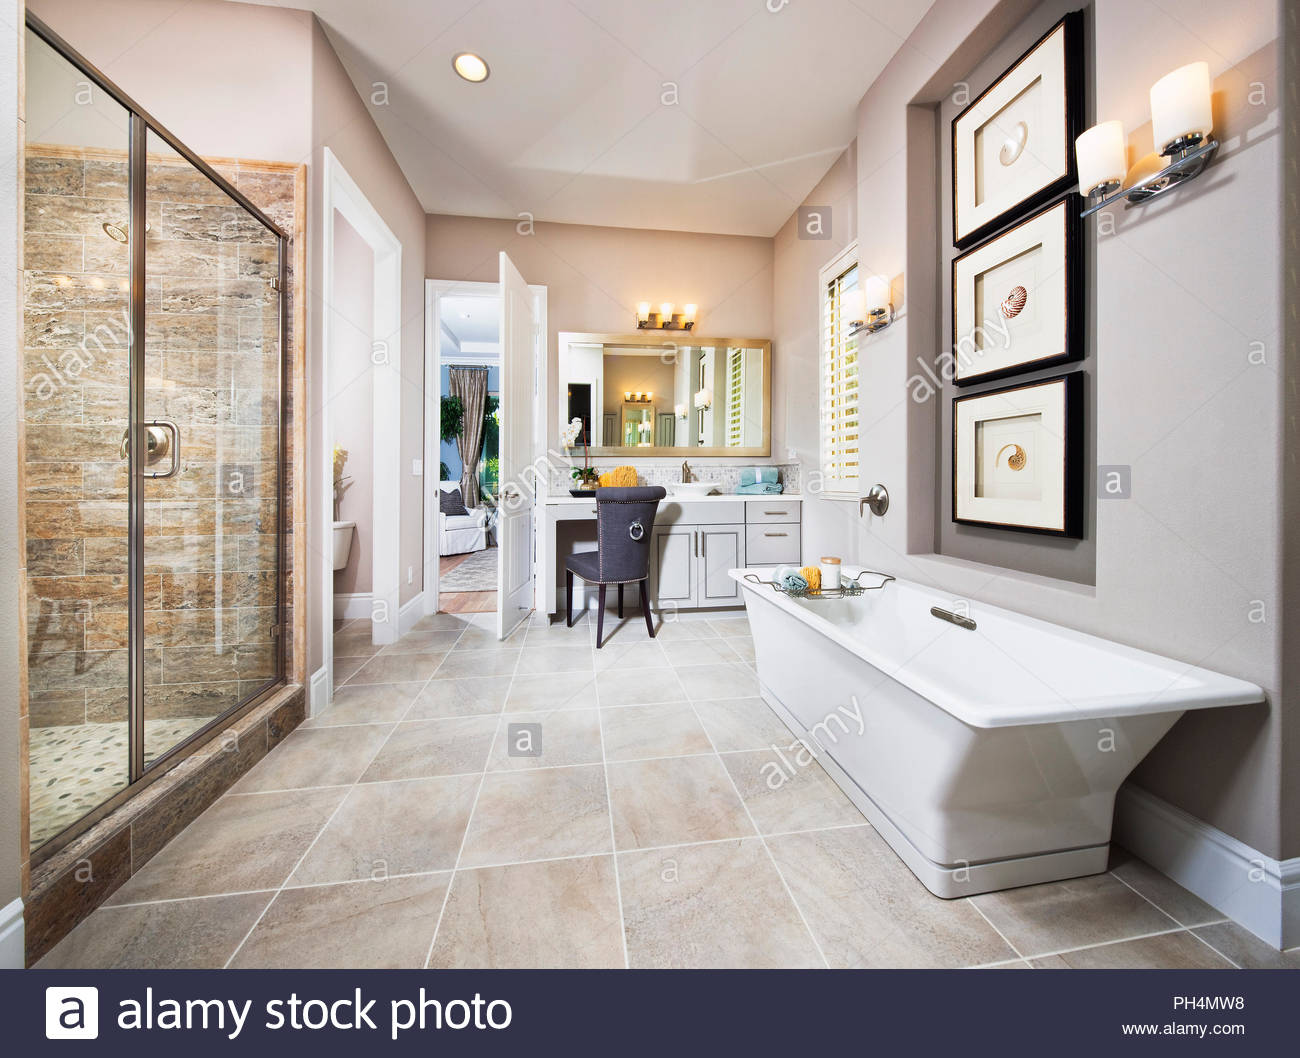 White and grey bathroom - Stock Image